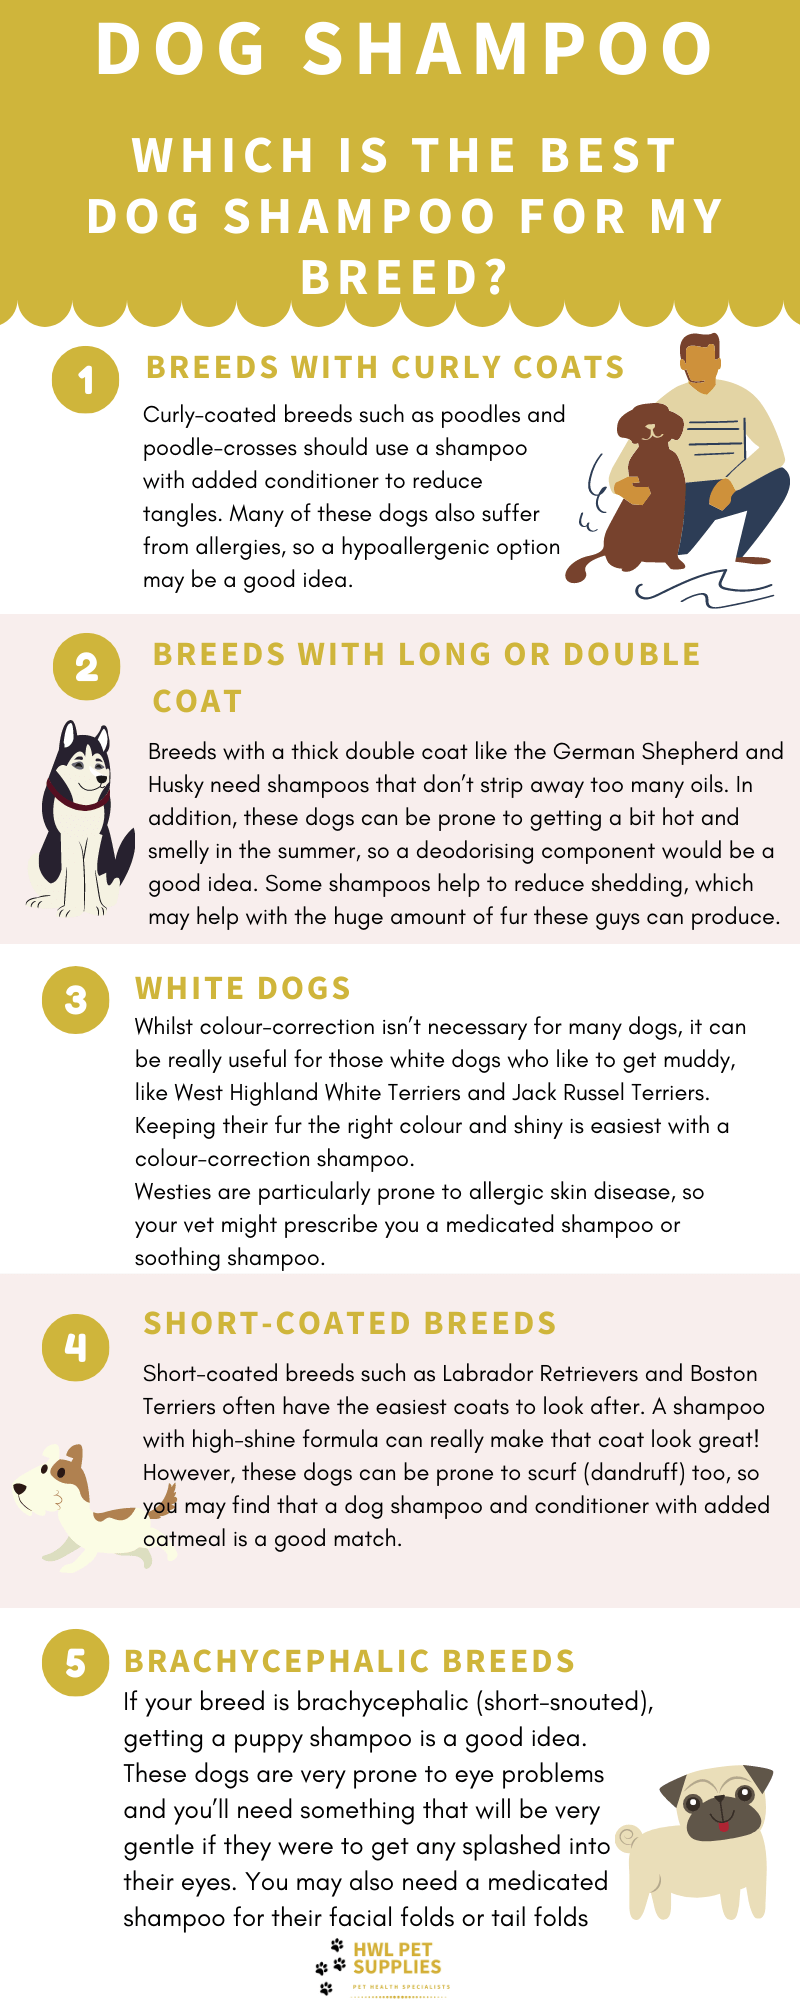 Dog shampoo - which shampoo is best for my dog breed